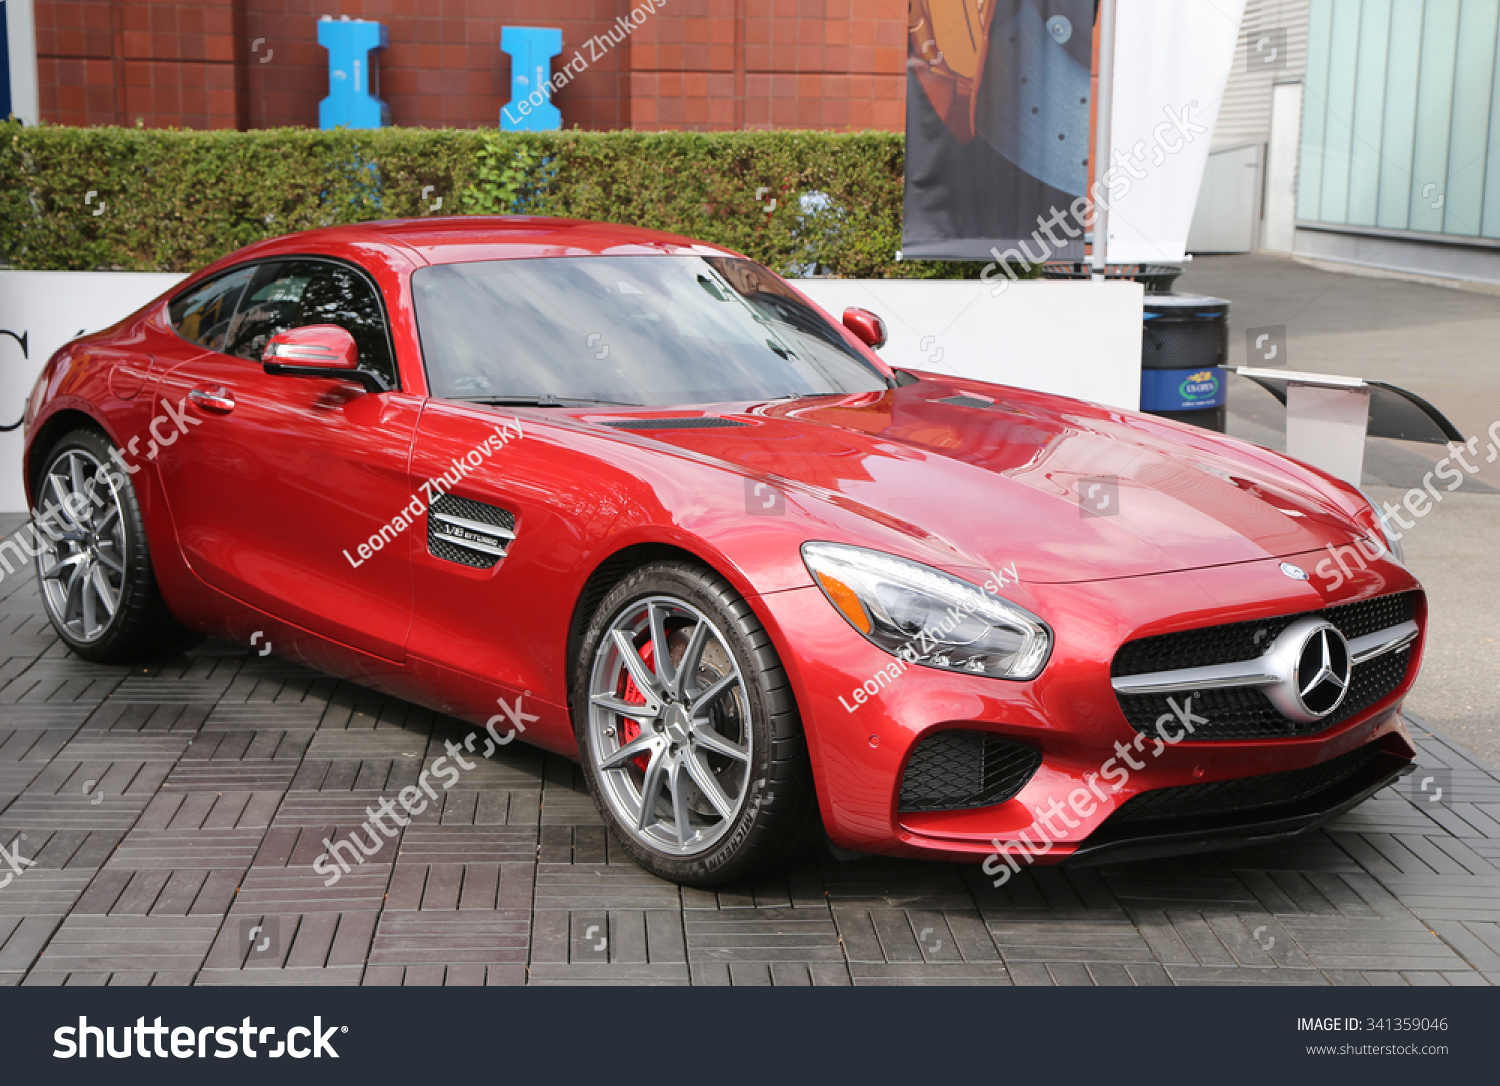 New york september 12 2015 mercedes benz amg gt s on for Mercedes benz us open